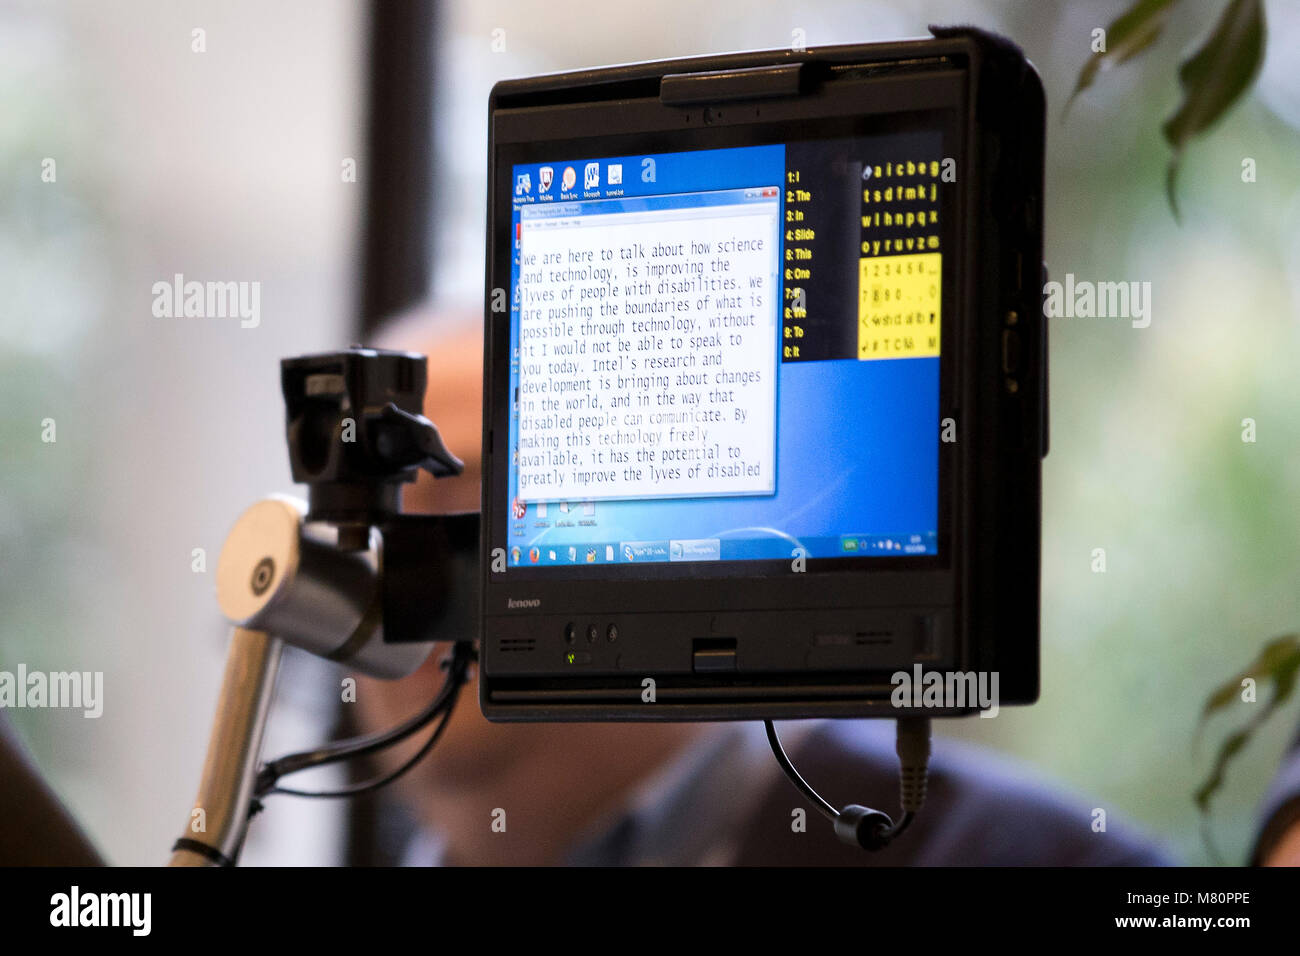 Professor Stephen Hawking ACAT intel computer screen is pictured as he speaks to media at a press conference in Stock Photo